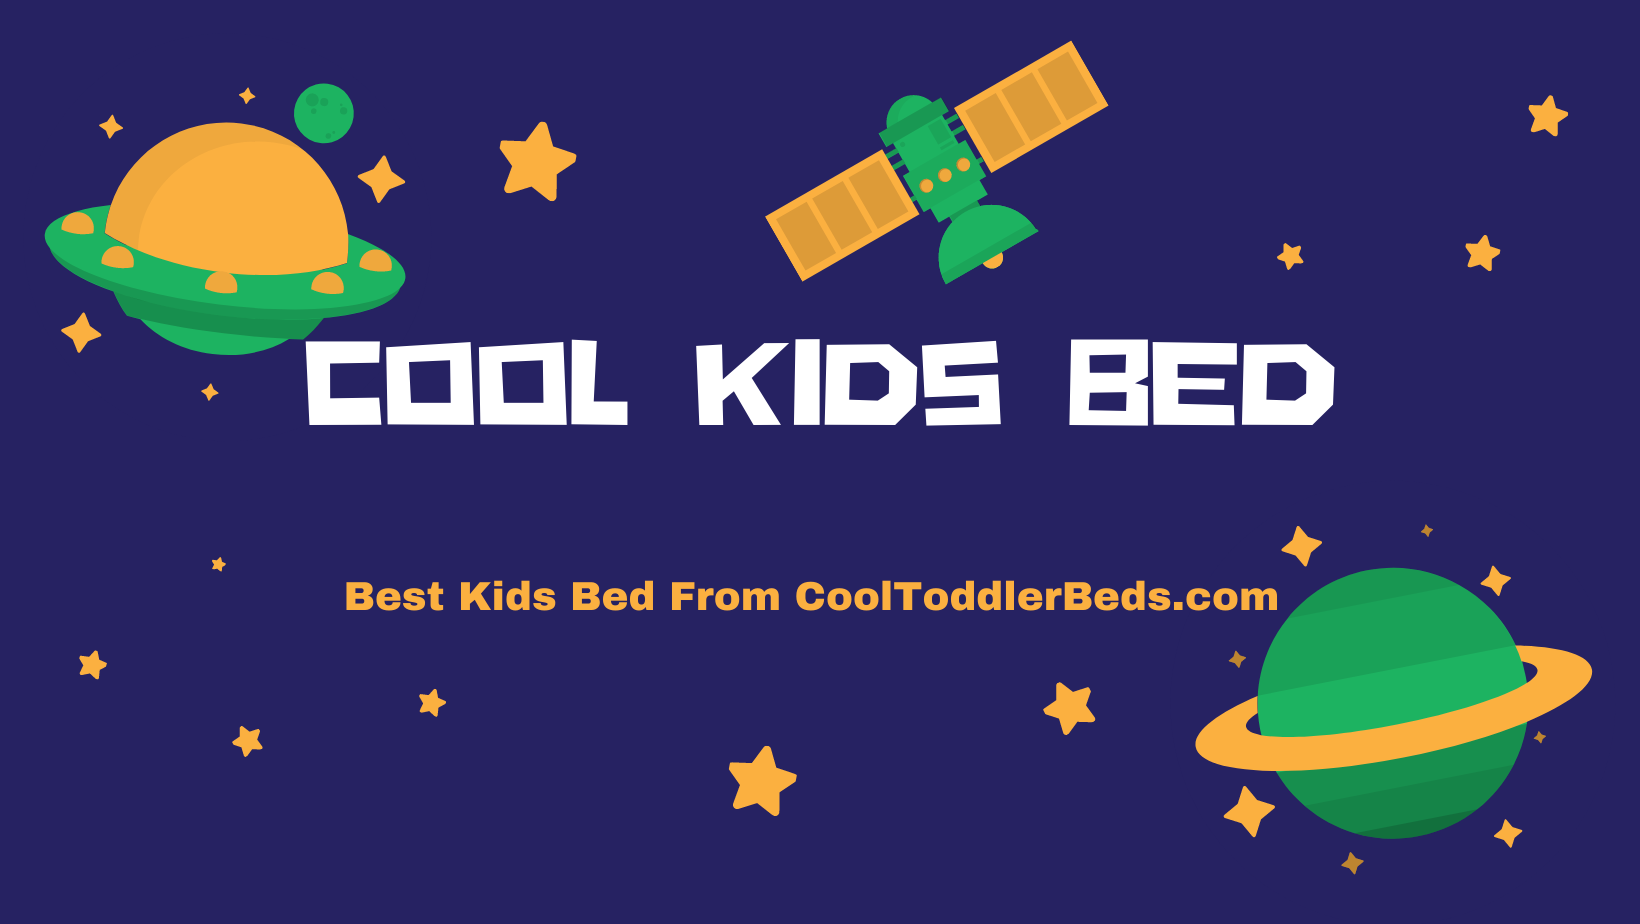 Best Kids Bed From CoolToddlerBeds.com